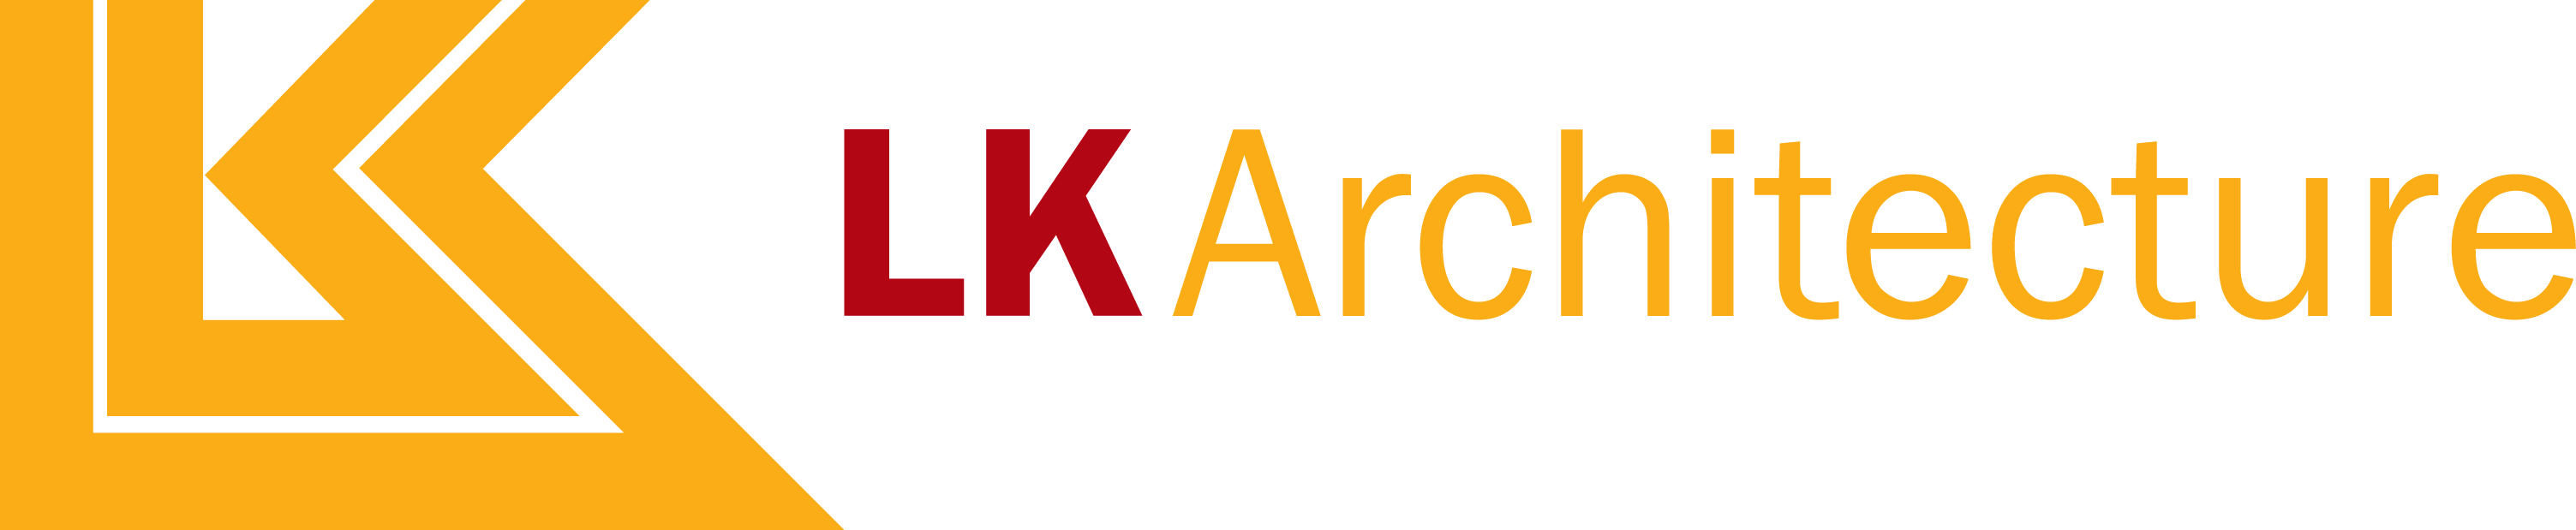 Lk Architecture National Commercial Architecture Firm